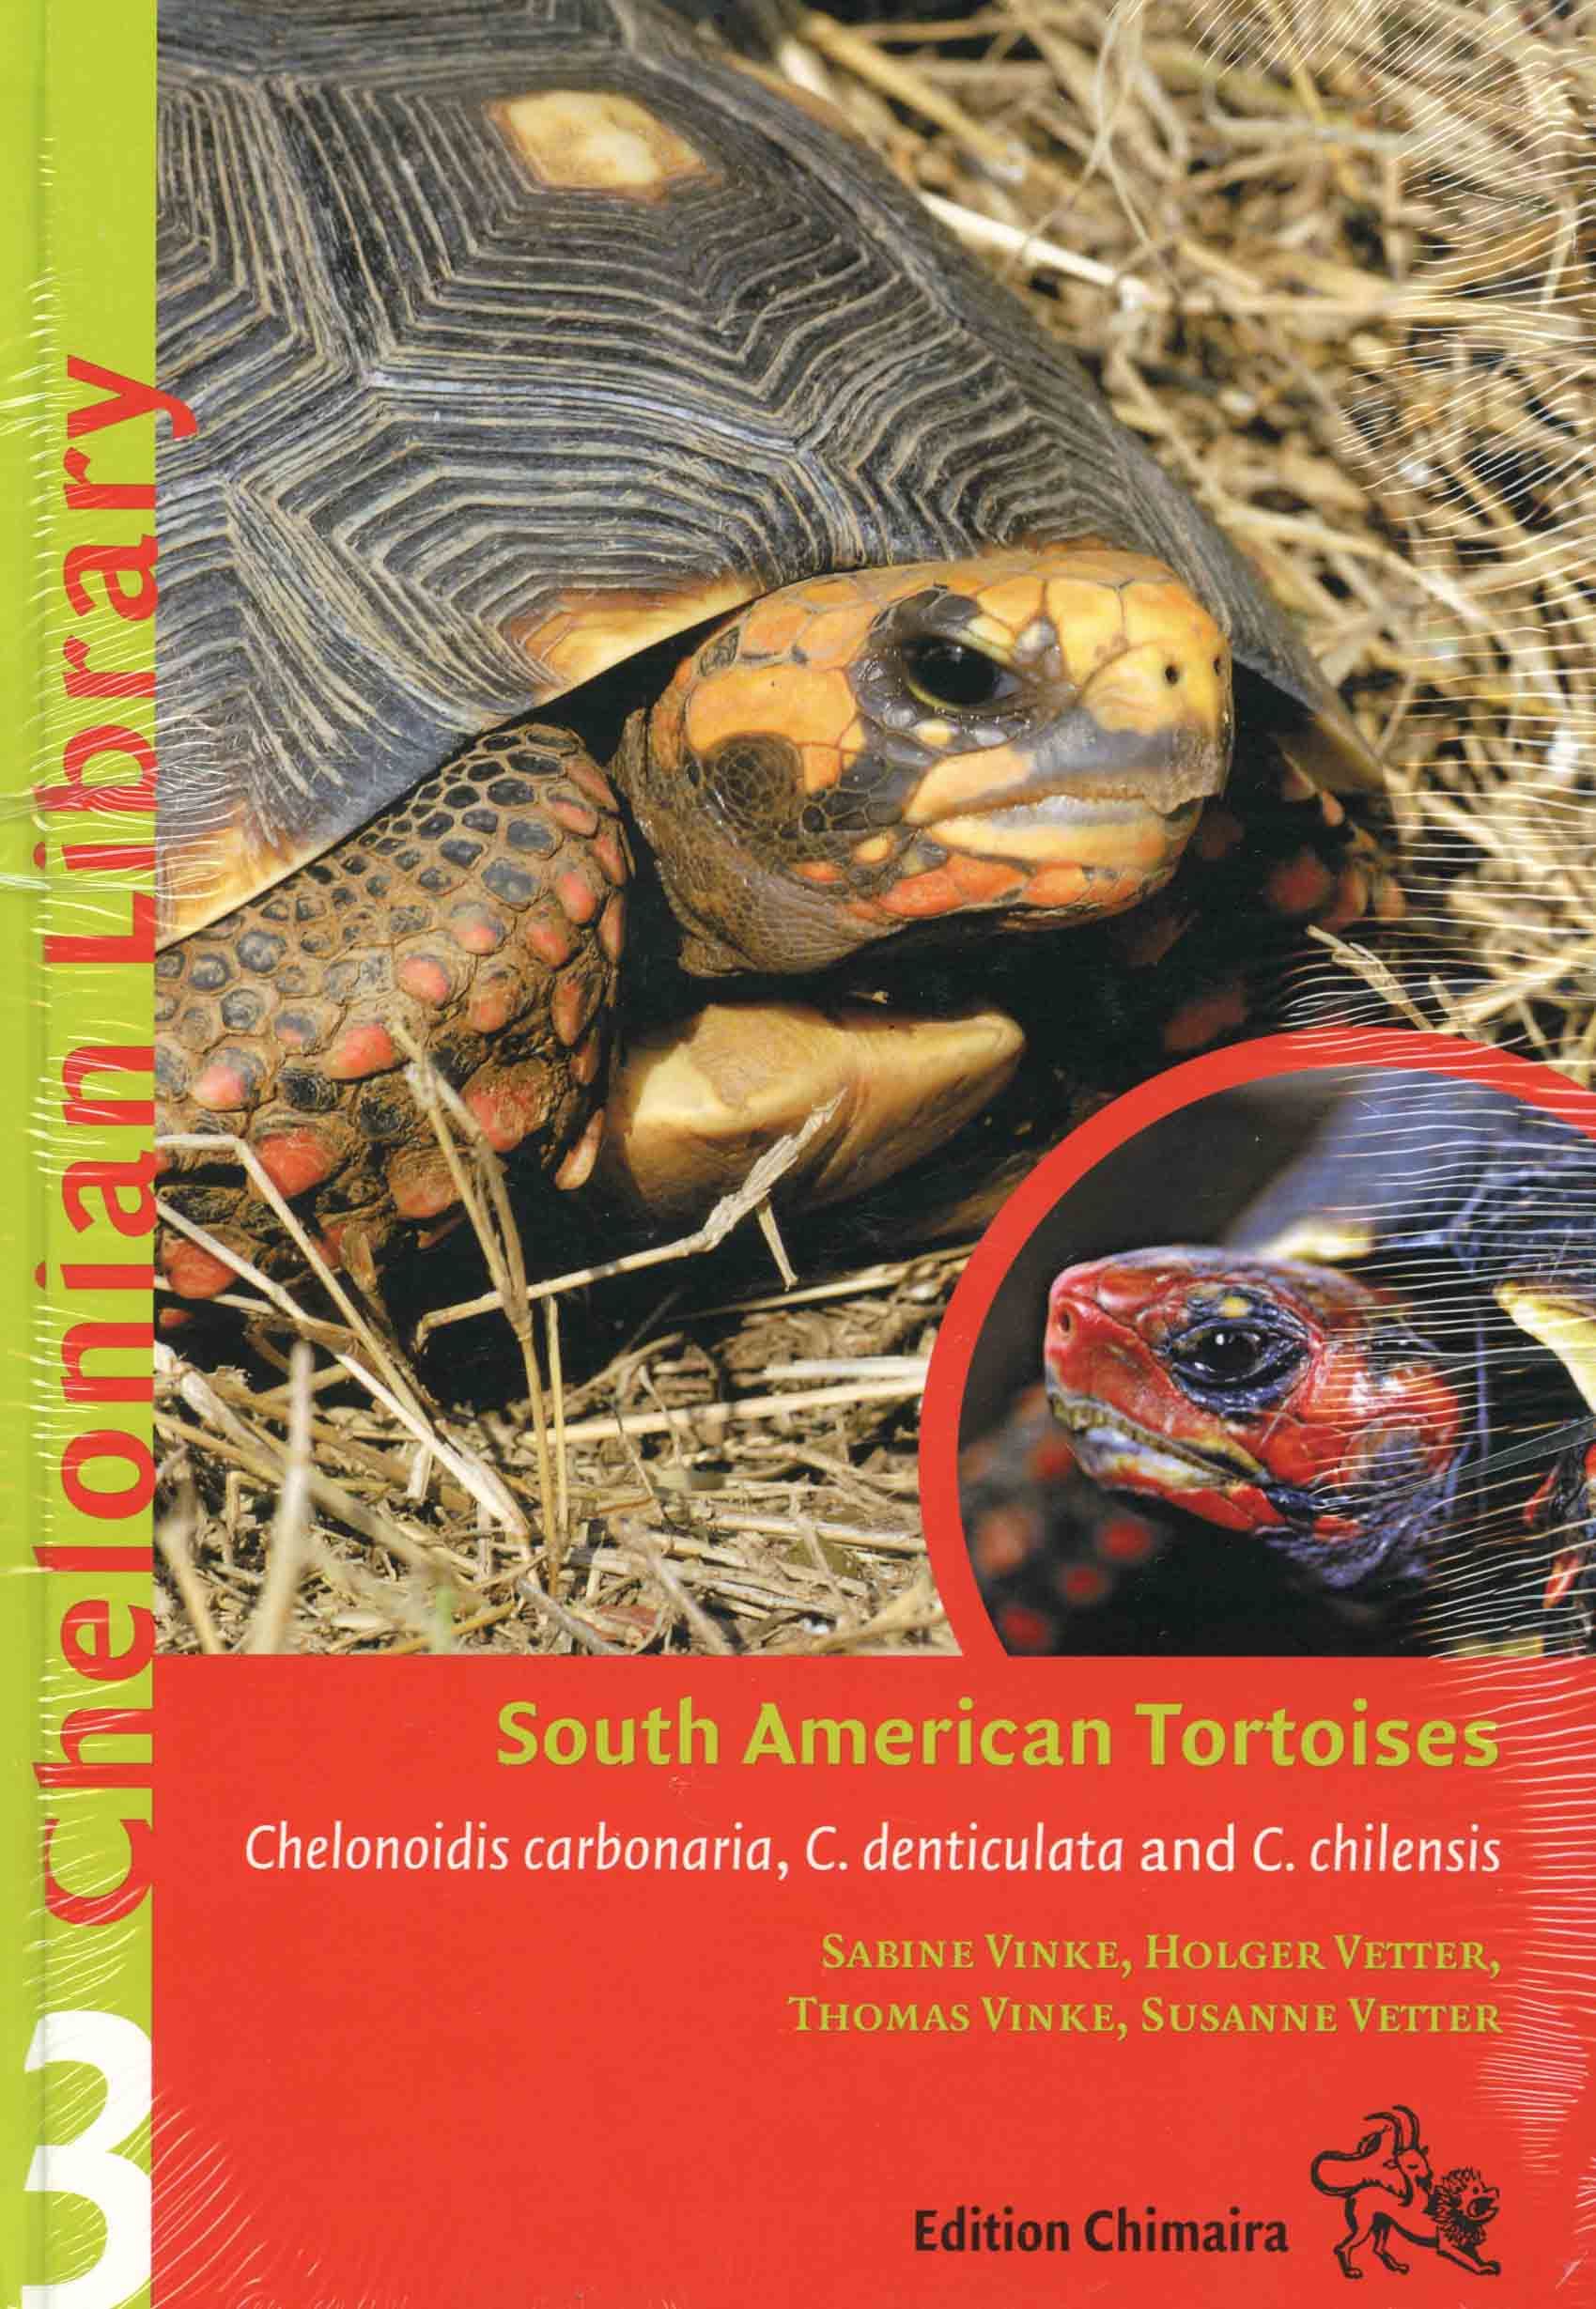 Image for South American Tortoises: Chelonoidis carbonaria, C. denticulata and C. chilensis,